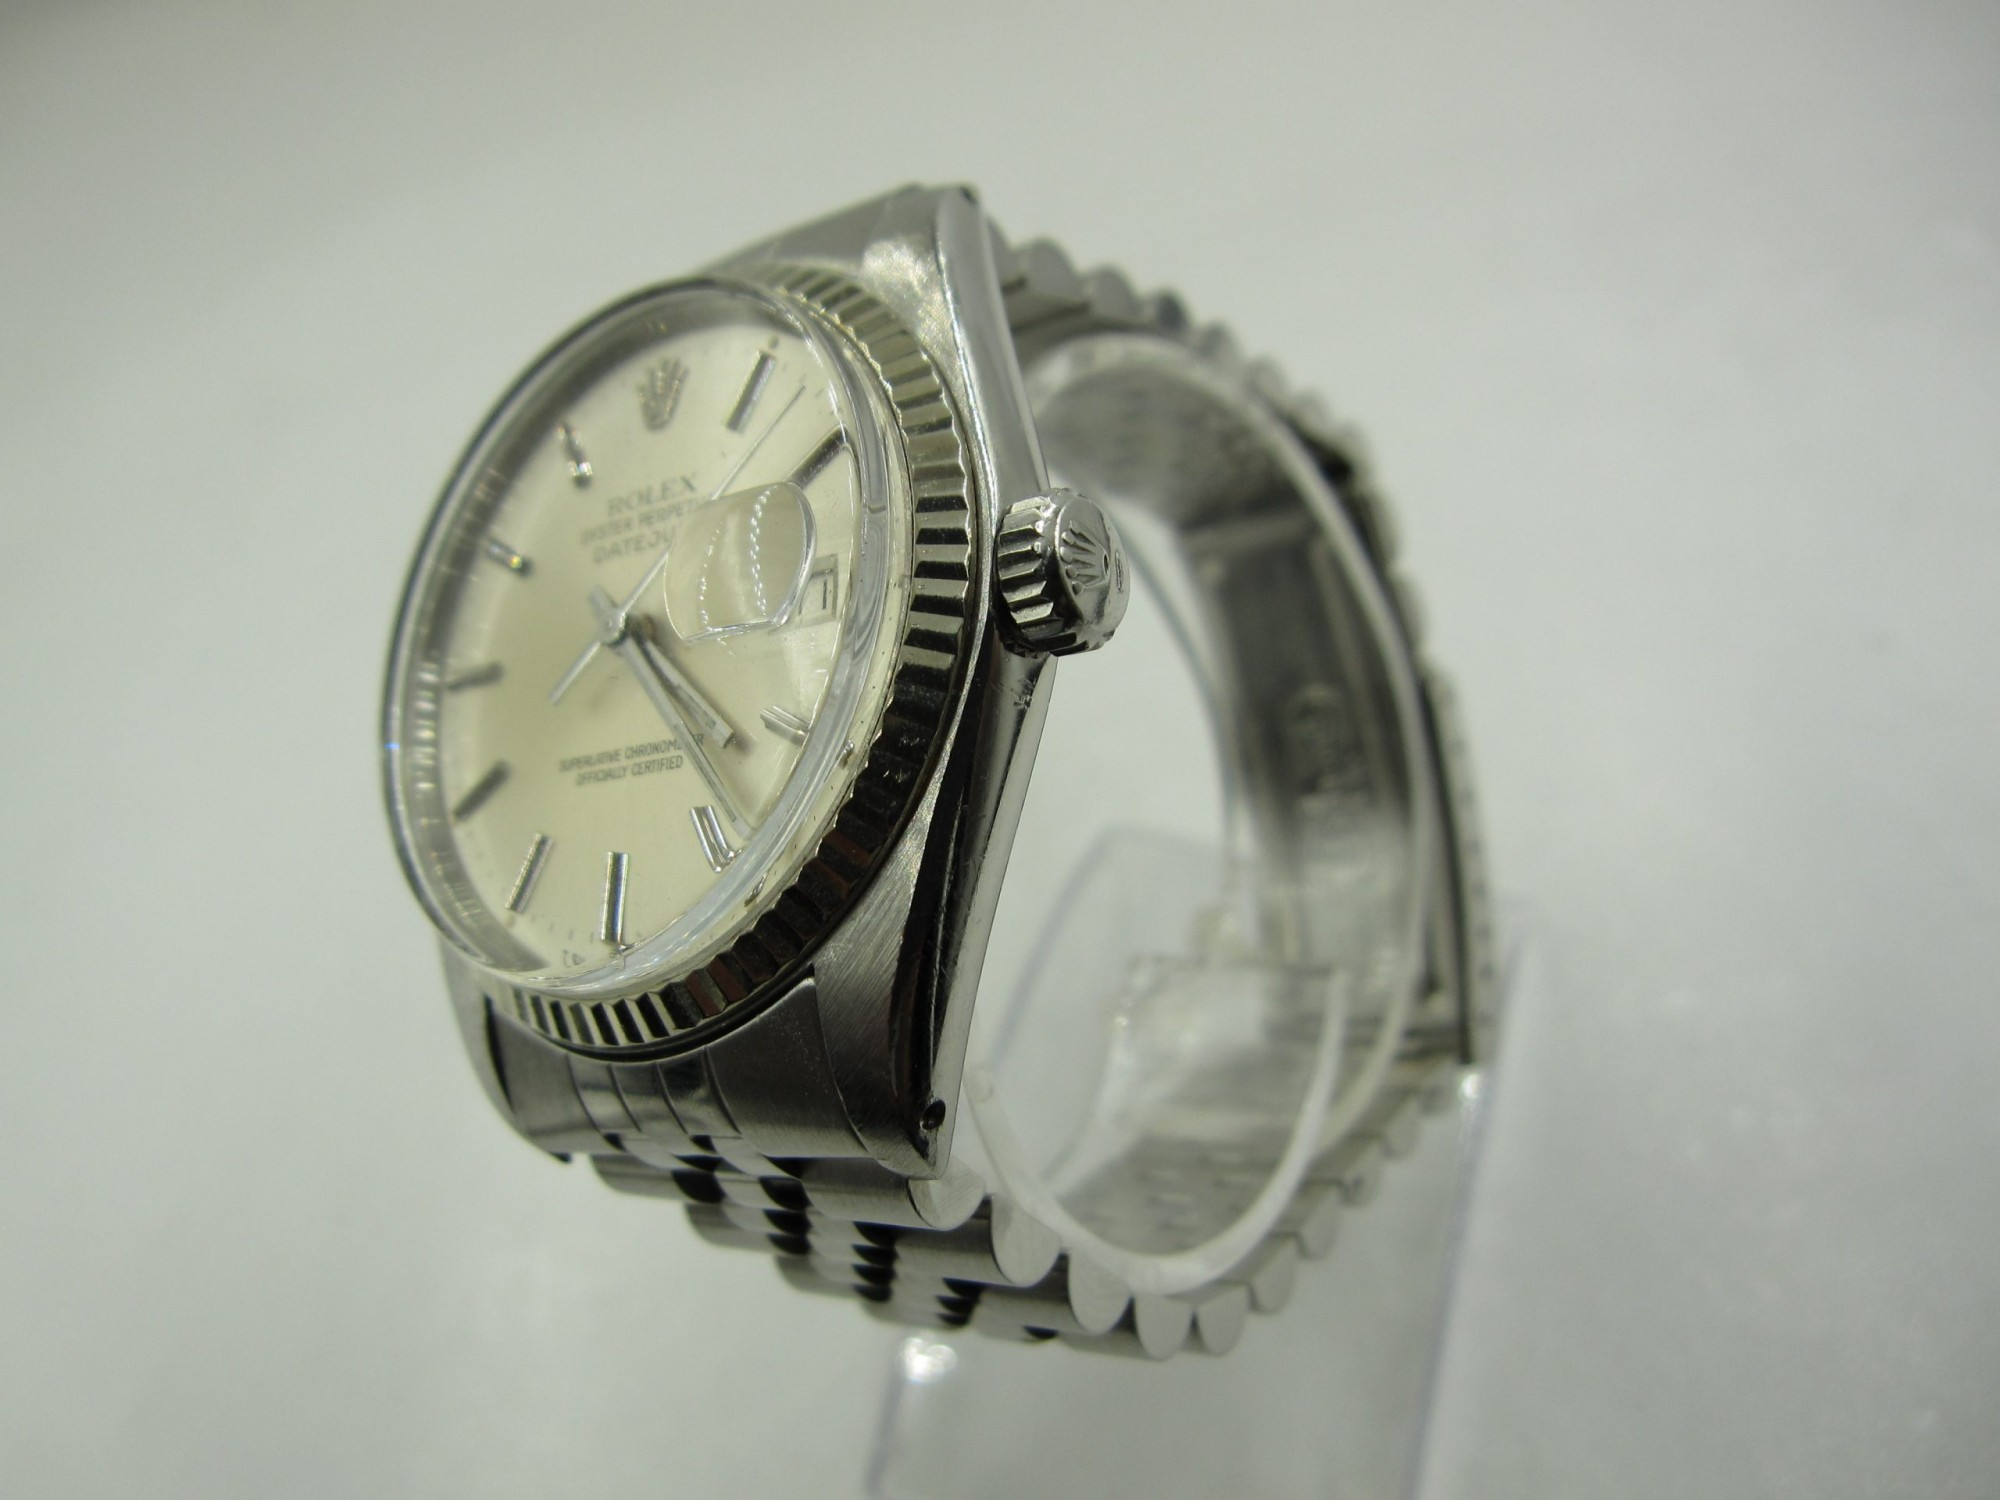 Rolex Oyster Perpetual Datejust 16014(Pre-Owned Rolex Watch)RL-262